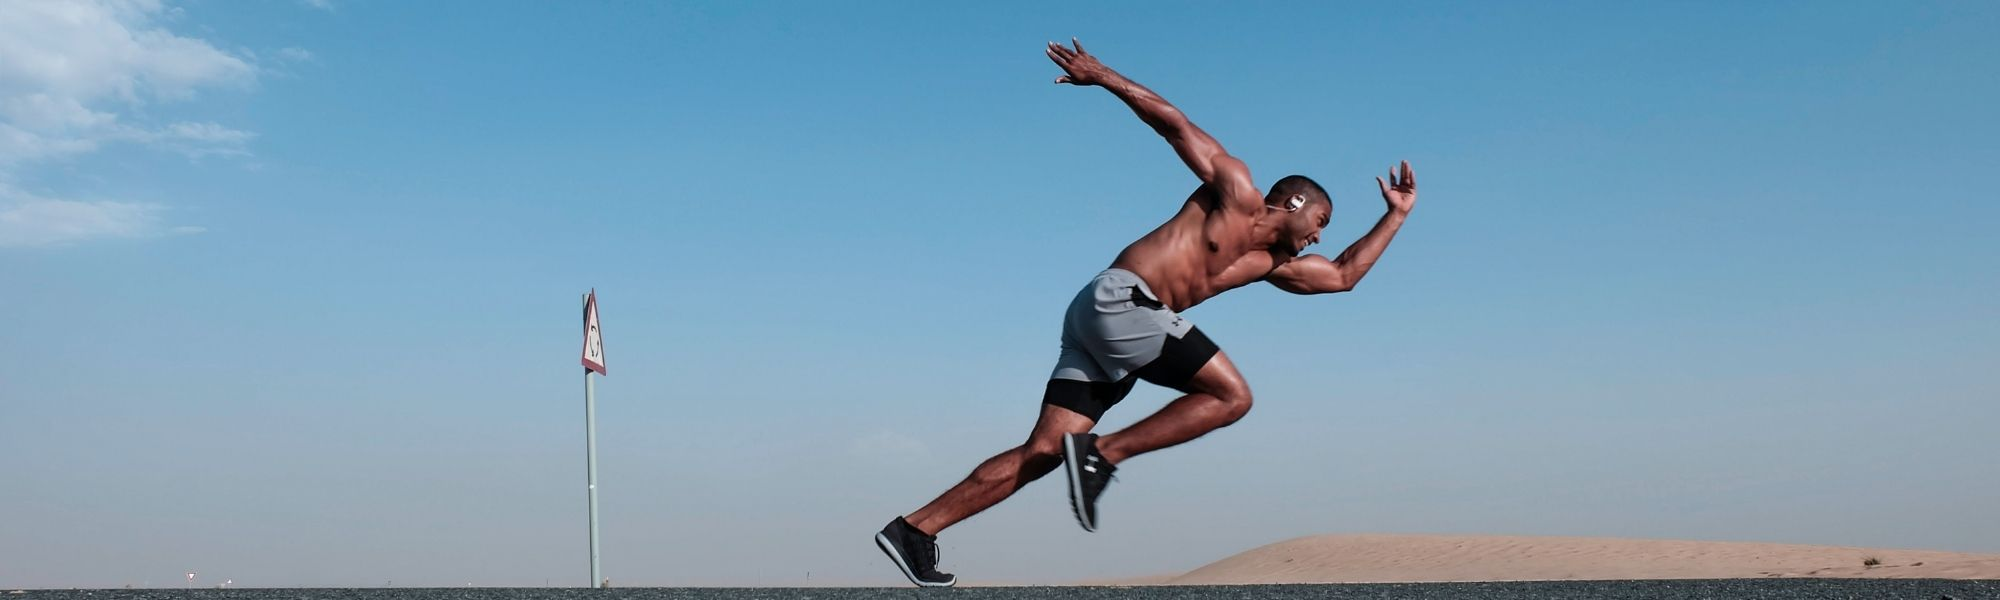 CALLING ALL RUNNERS! THE BENEFITS OF STRENGTH TRAINING FOR RUNNING